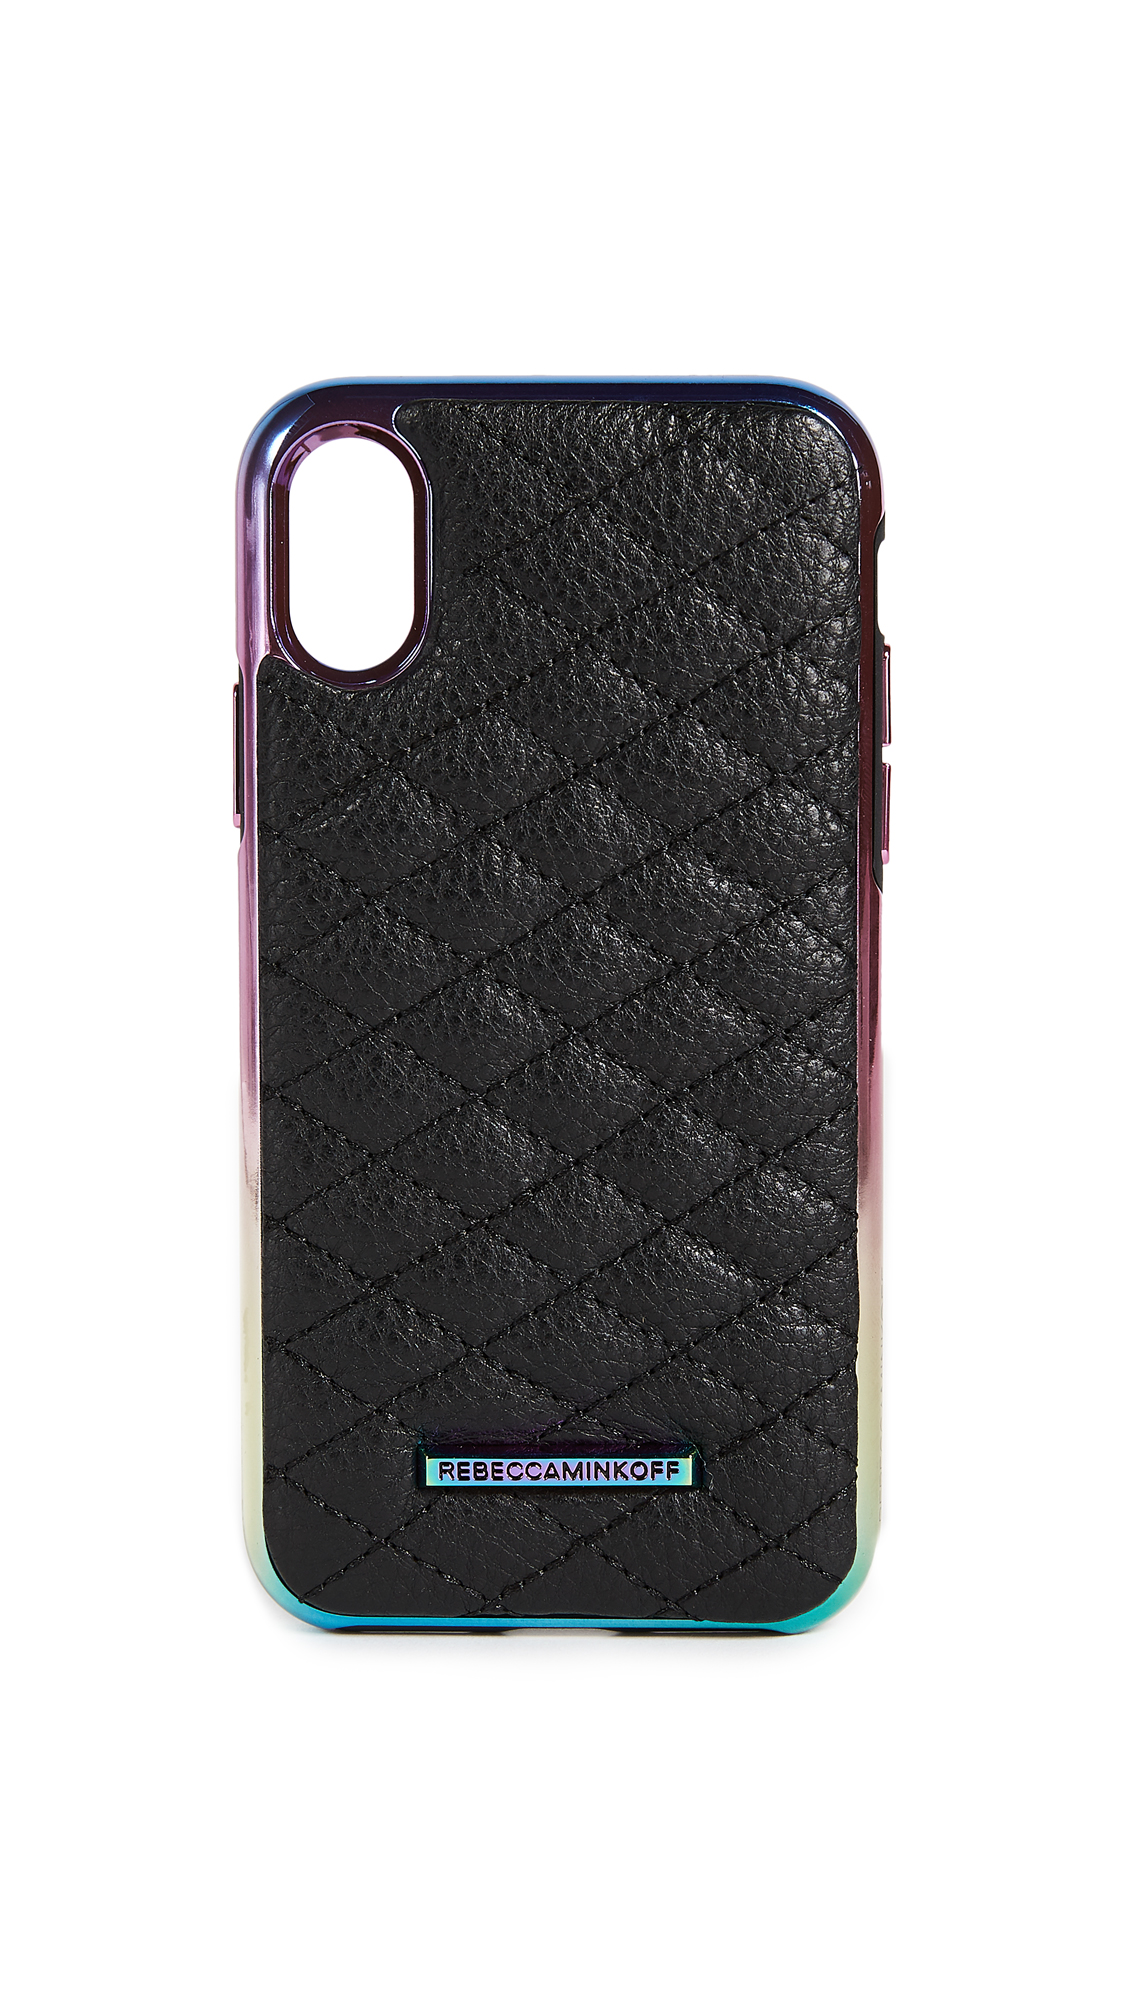 Rebecca Minkoff Quilted Love Oil Slick iPhone X Case - Black Oil Slick